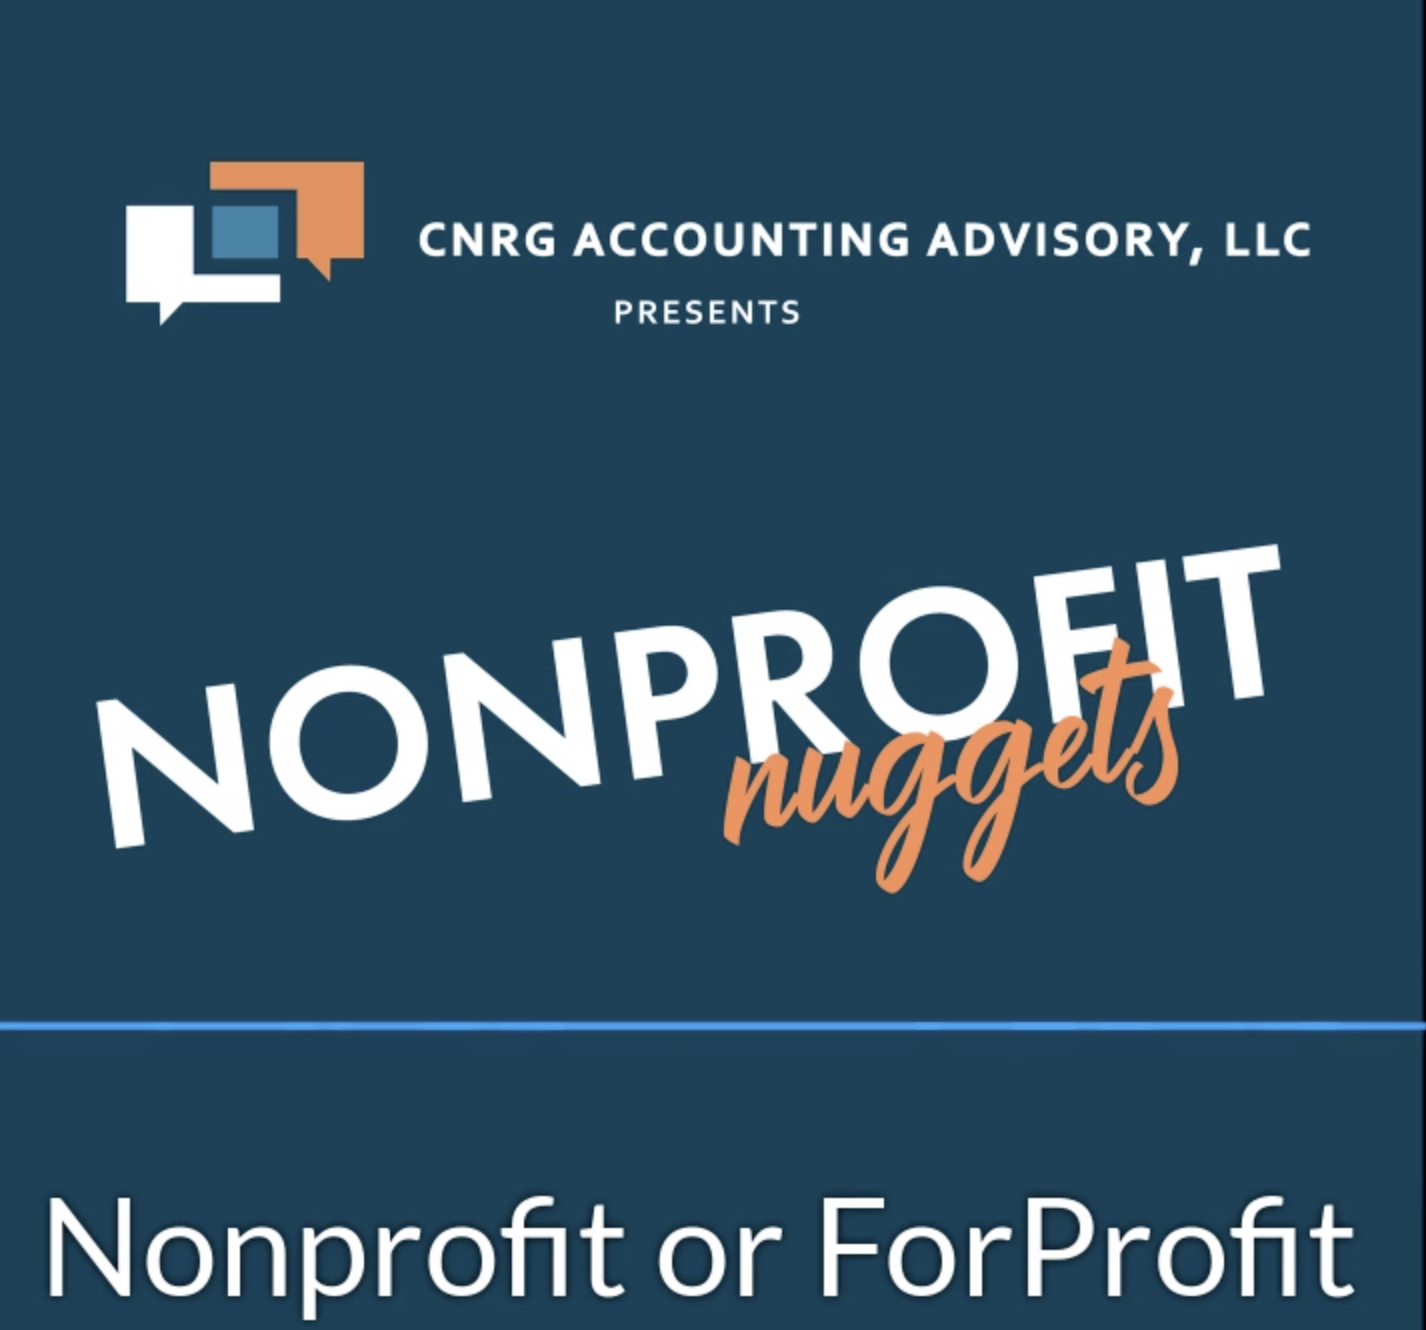 NonProfit or ForProfit